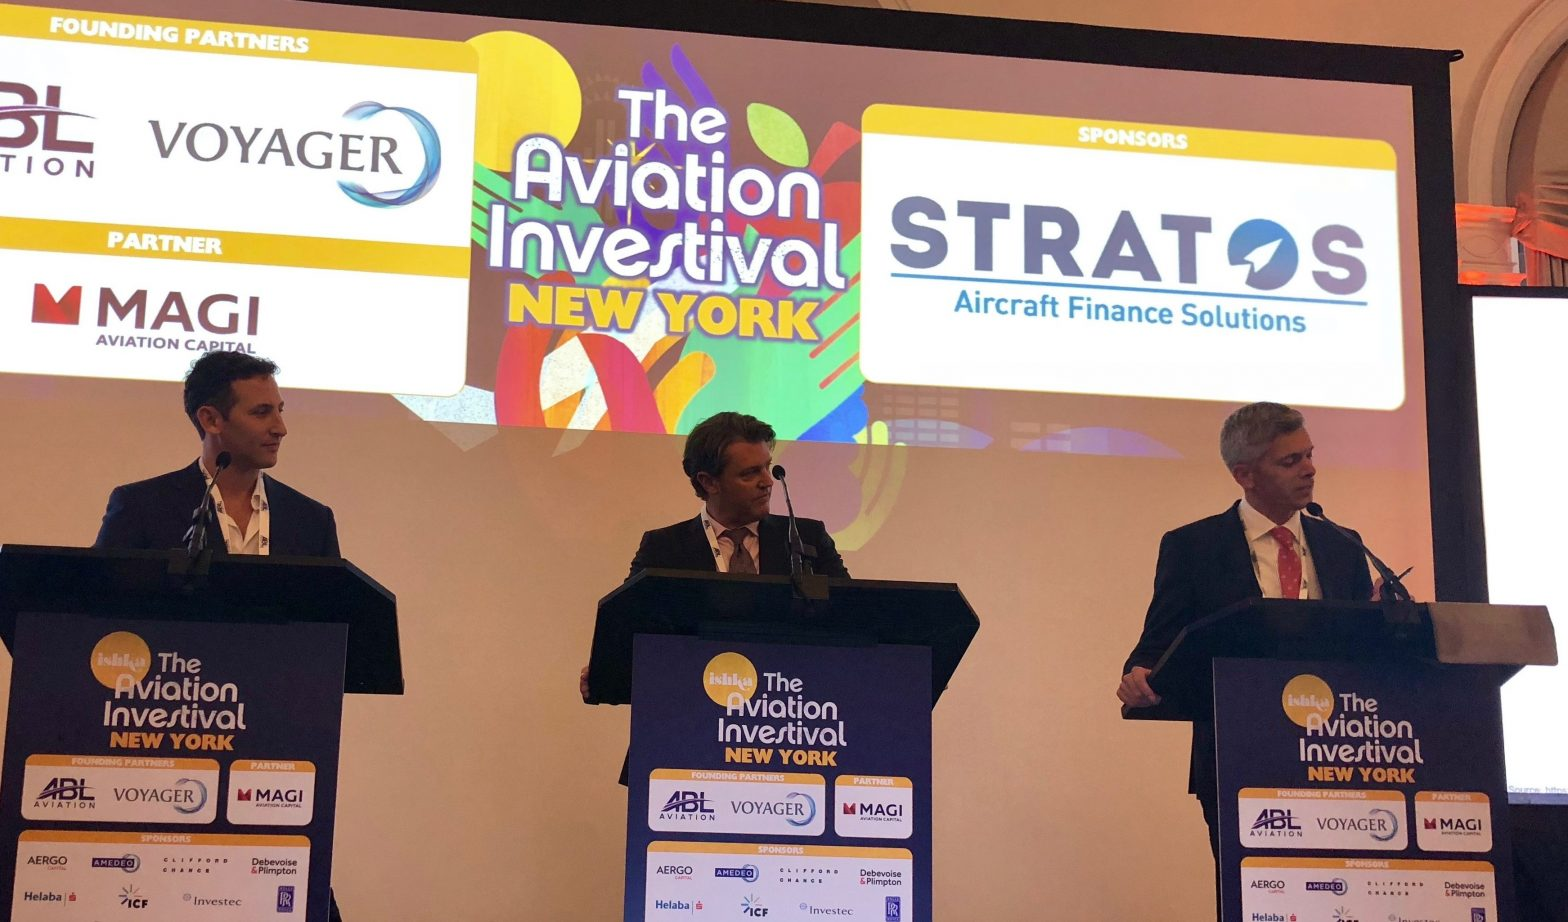 Stratos Debated @ Ishka NYC: Defended the ABS market - Stratos